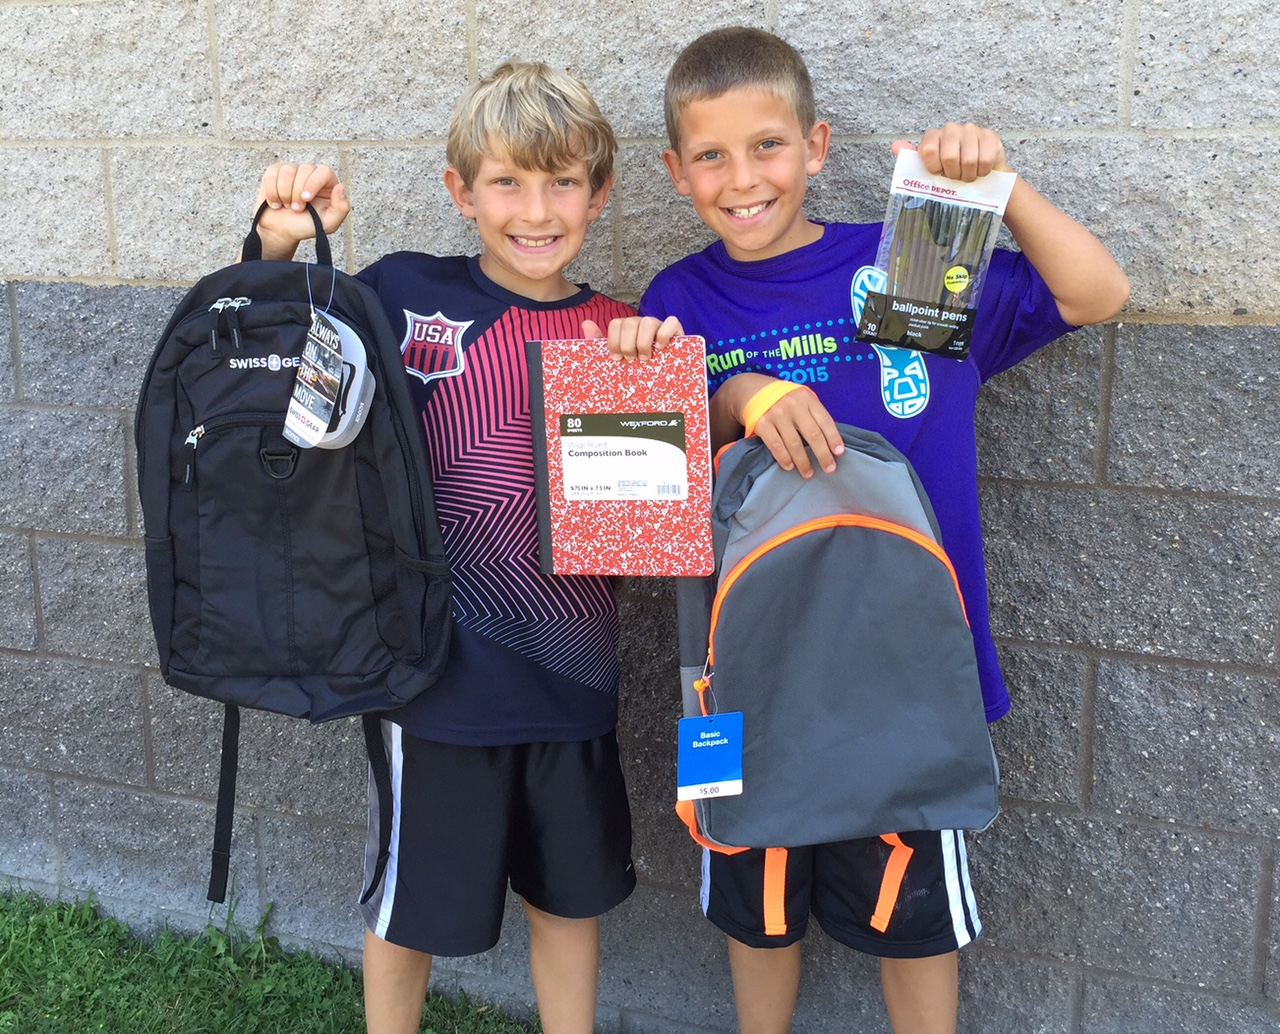 School Supply Donations For Kids